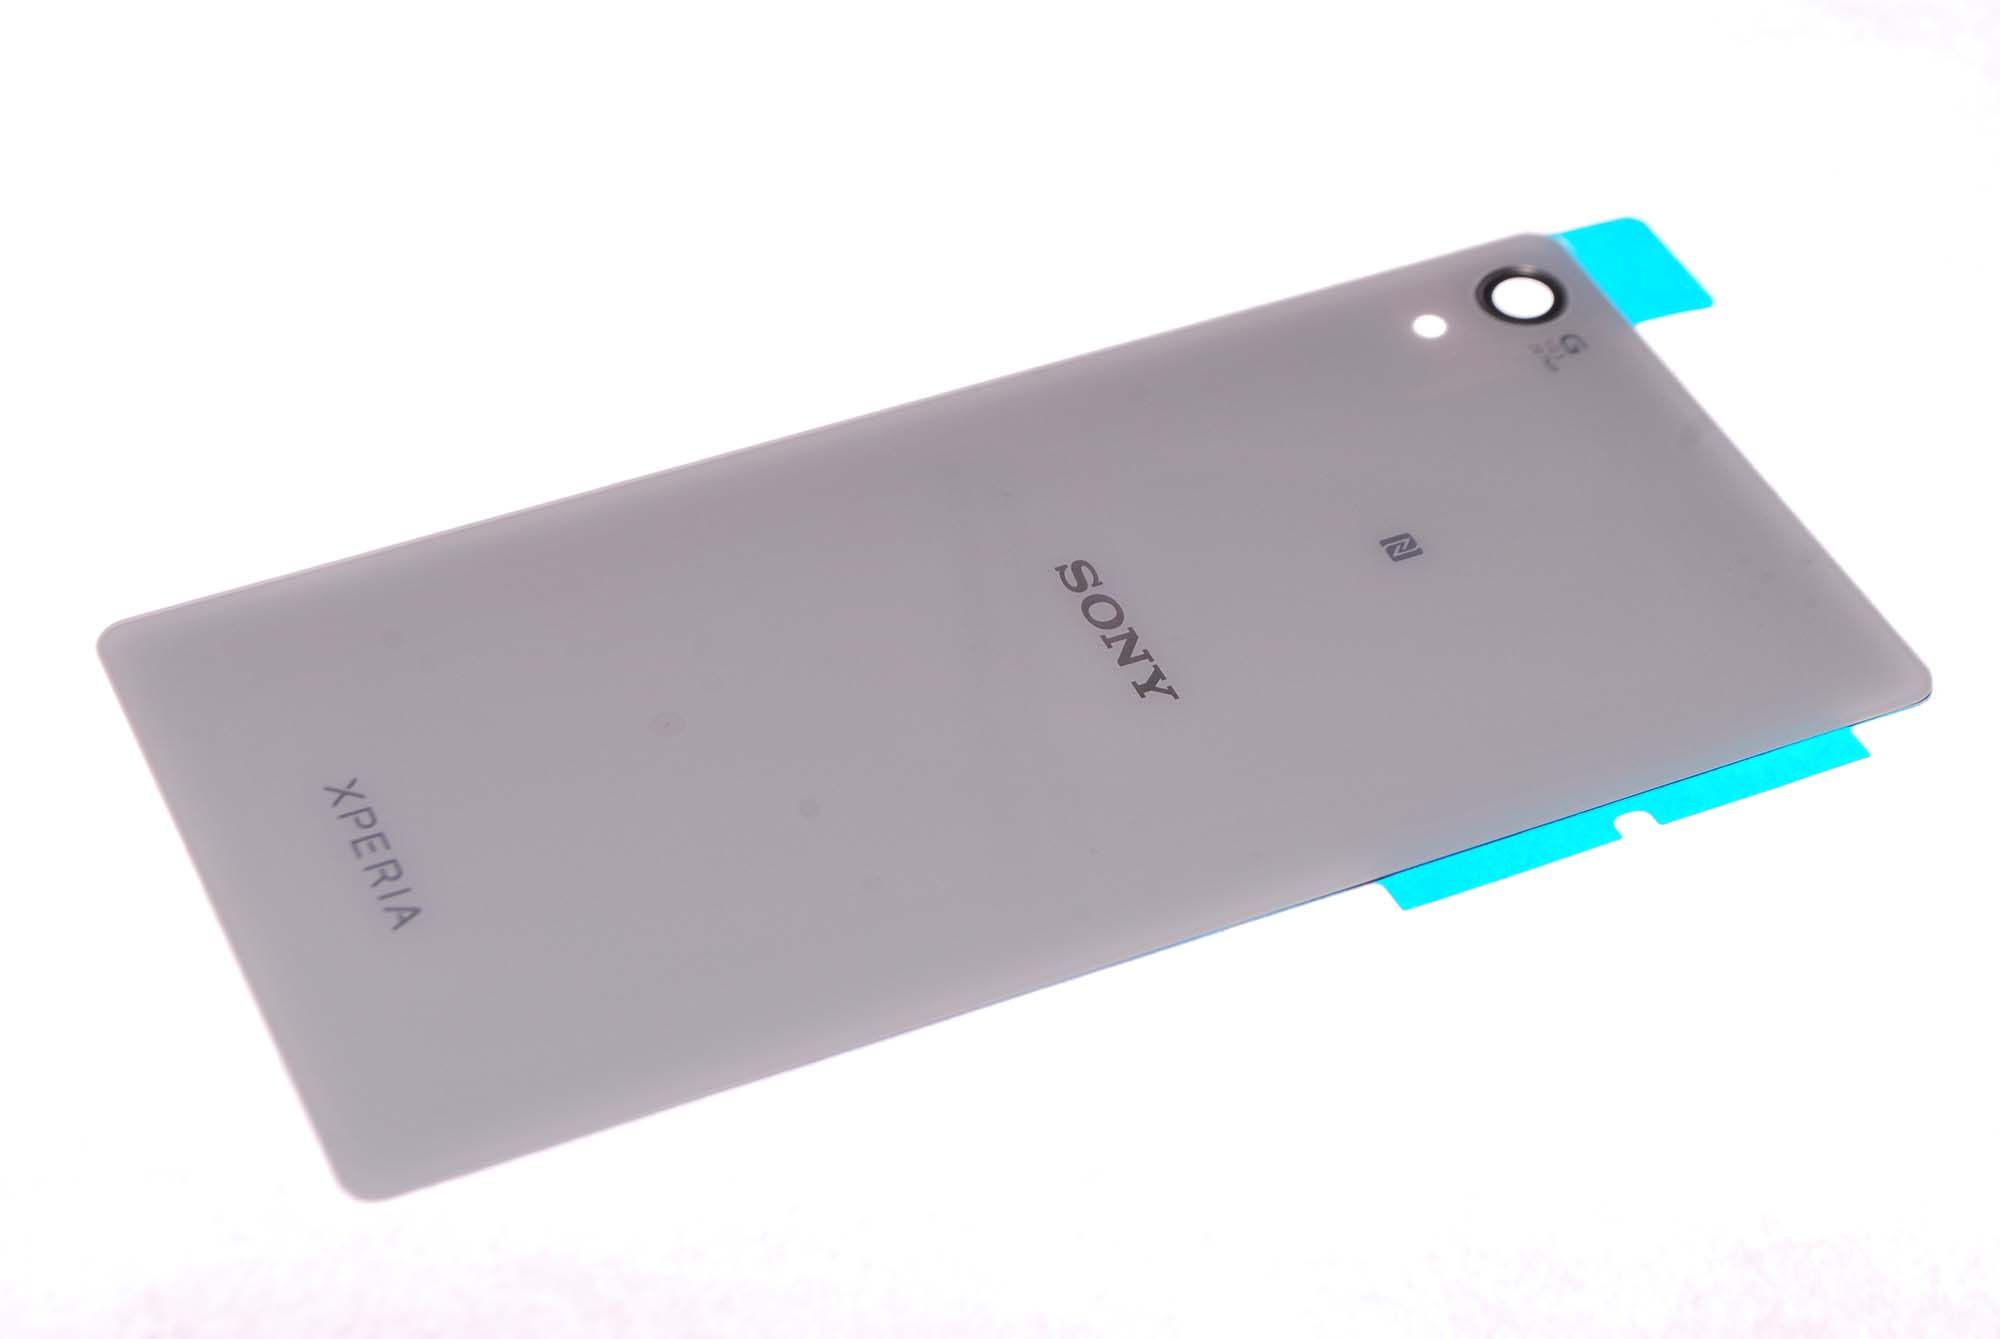 ������ ������ ��� ��� Sony Xperia Z2 (D6503/D6502) �����